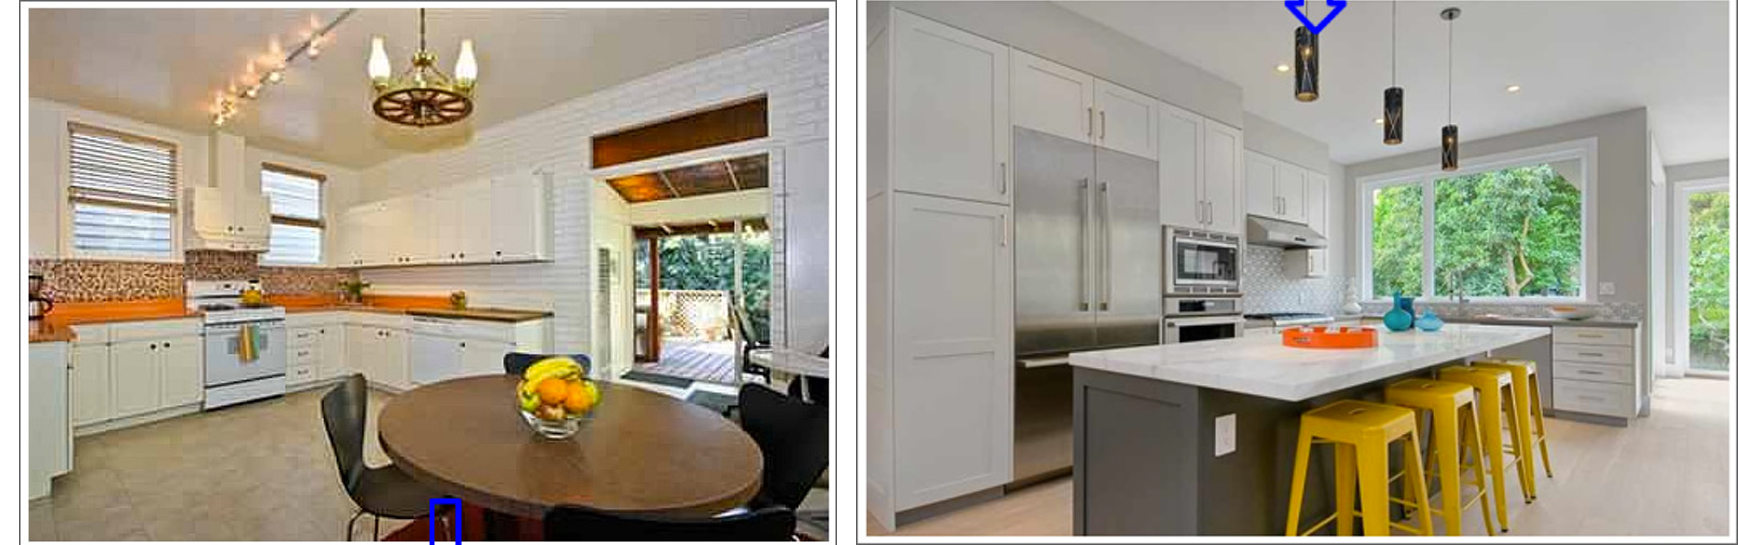 Via Before And After Kitchen